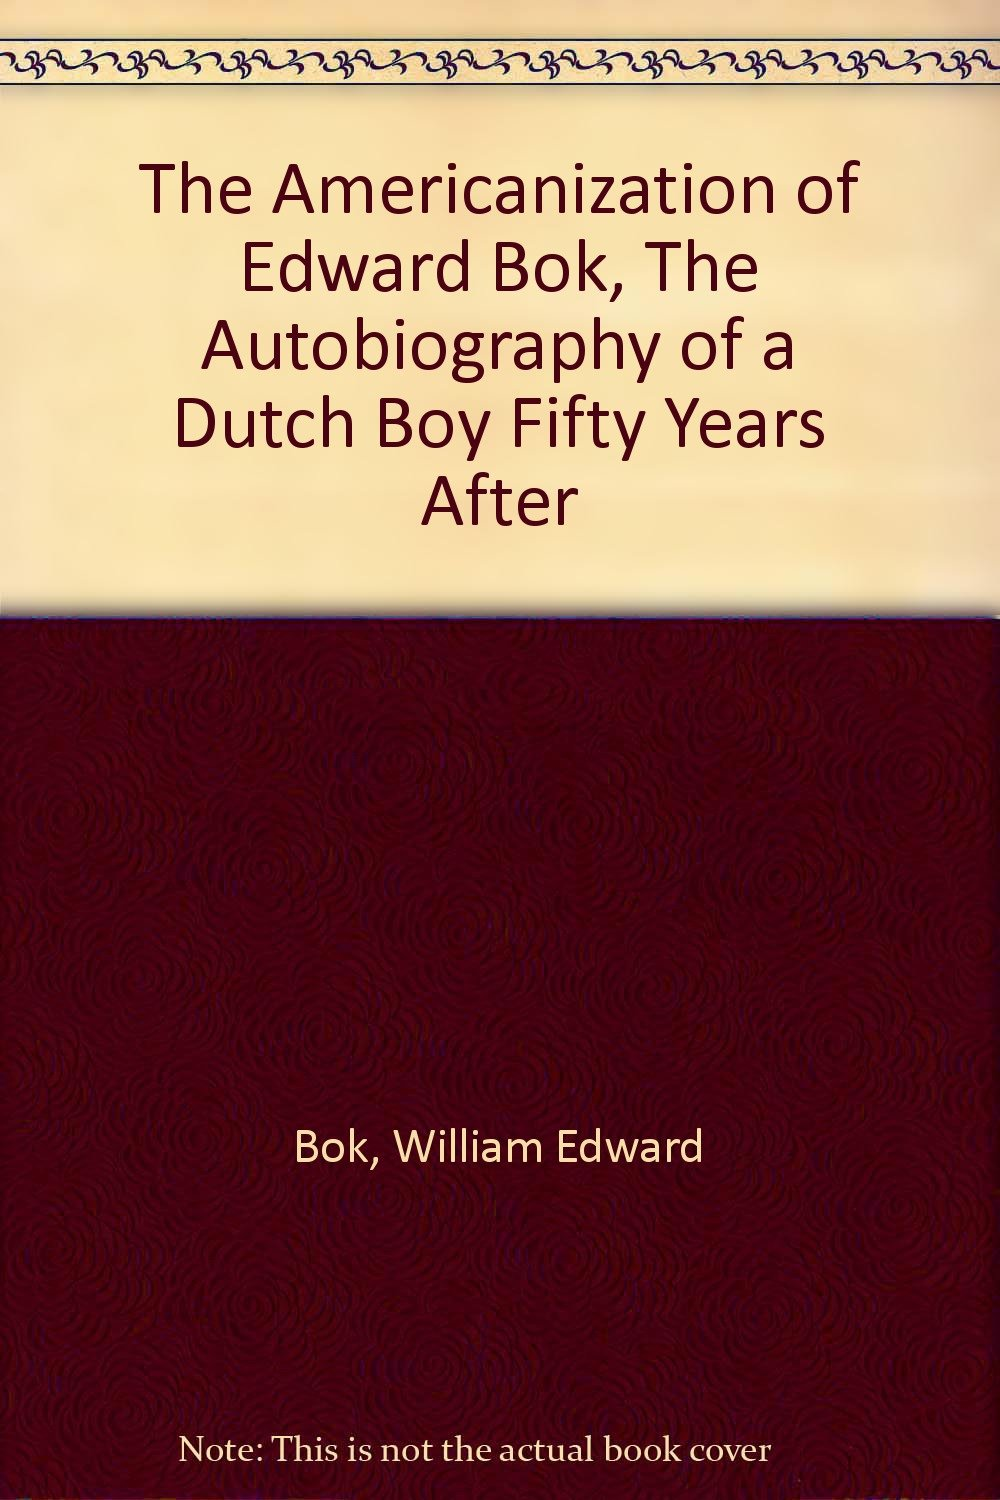 Download The Americanization of Edward Bok, The Autobiography of a Dutch Boy Fifty Years After PDF